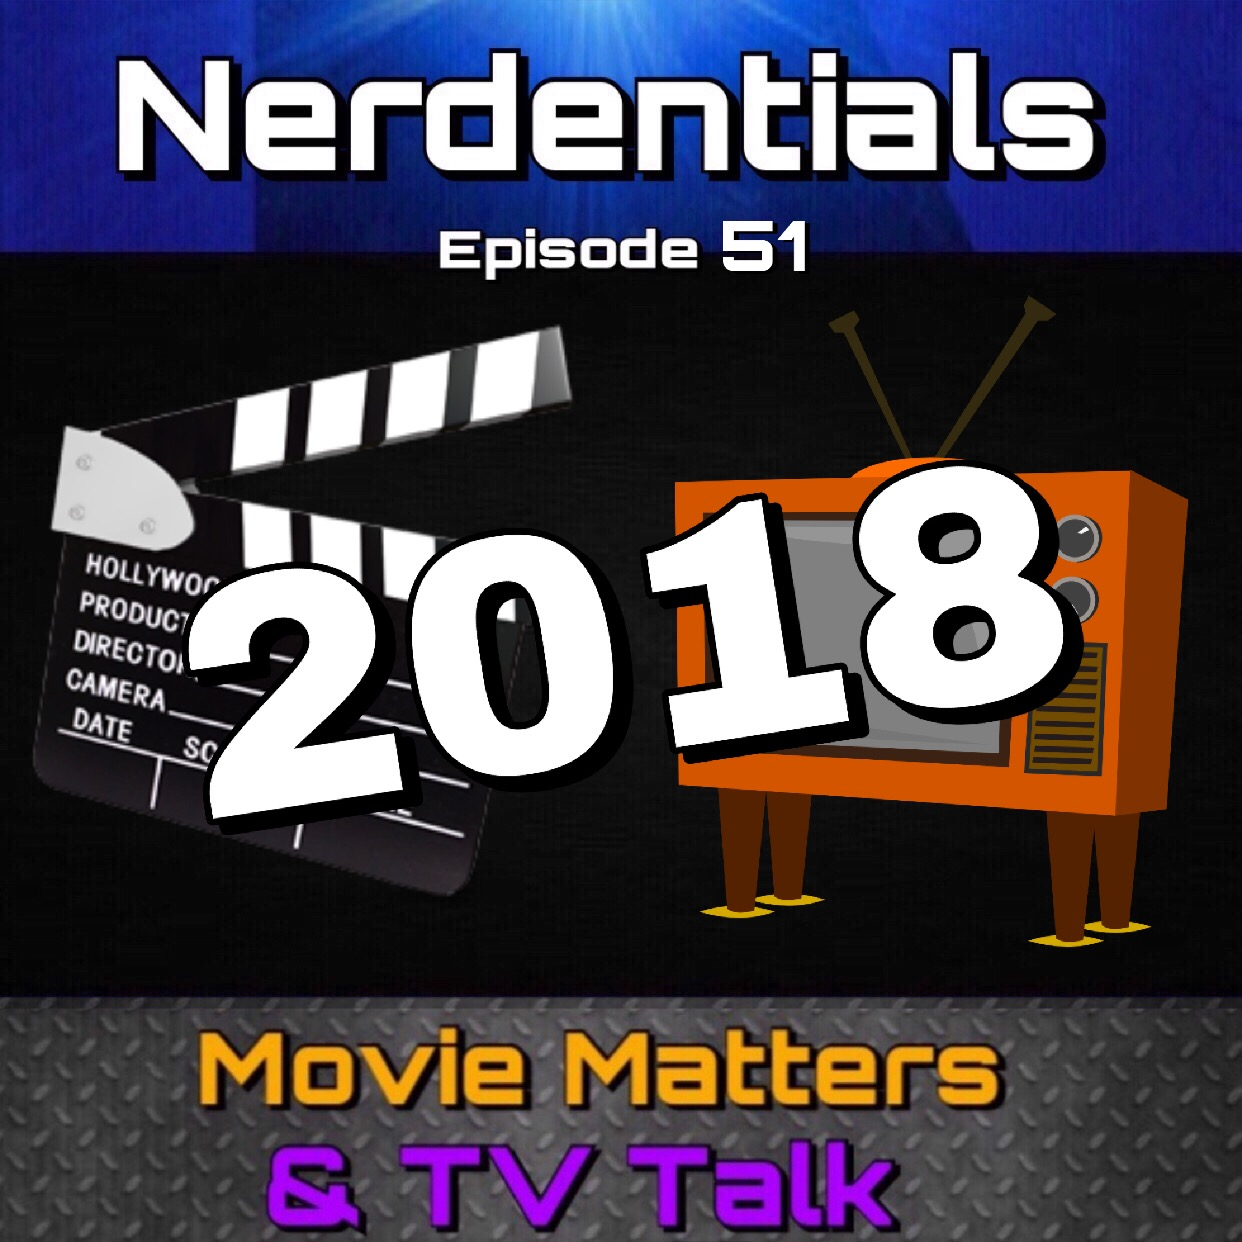 - Welcome to Nerdentials! Your weekly dose of the nerdy essentials. Covering Film, TV, Video Games and Comics.This Week Nerds your hosts, Joe, Matt, Nick and Lynn go over their top 3 picks for TV and MOVIES from 2018! It's Our Year in Review!